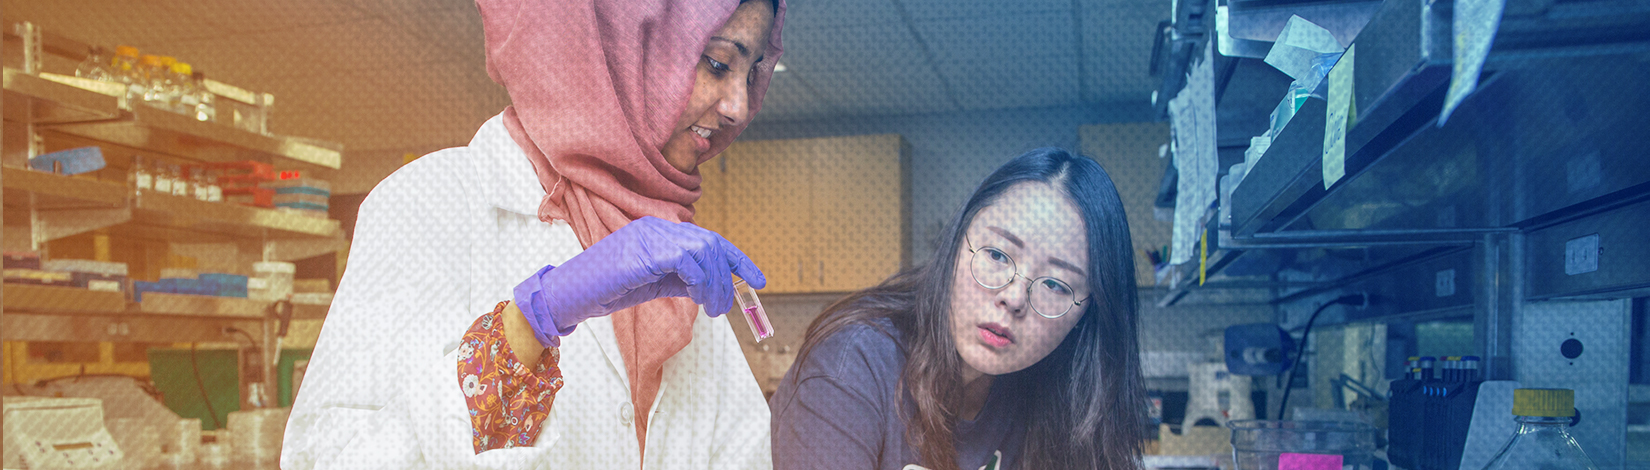 Female CALS location student wearing a white lab coat, gloves nad a headscarf pours a solution into graduated cylinders while her teacher observes.